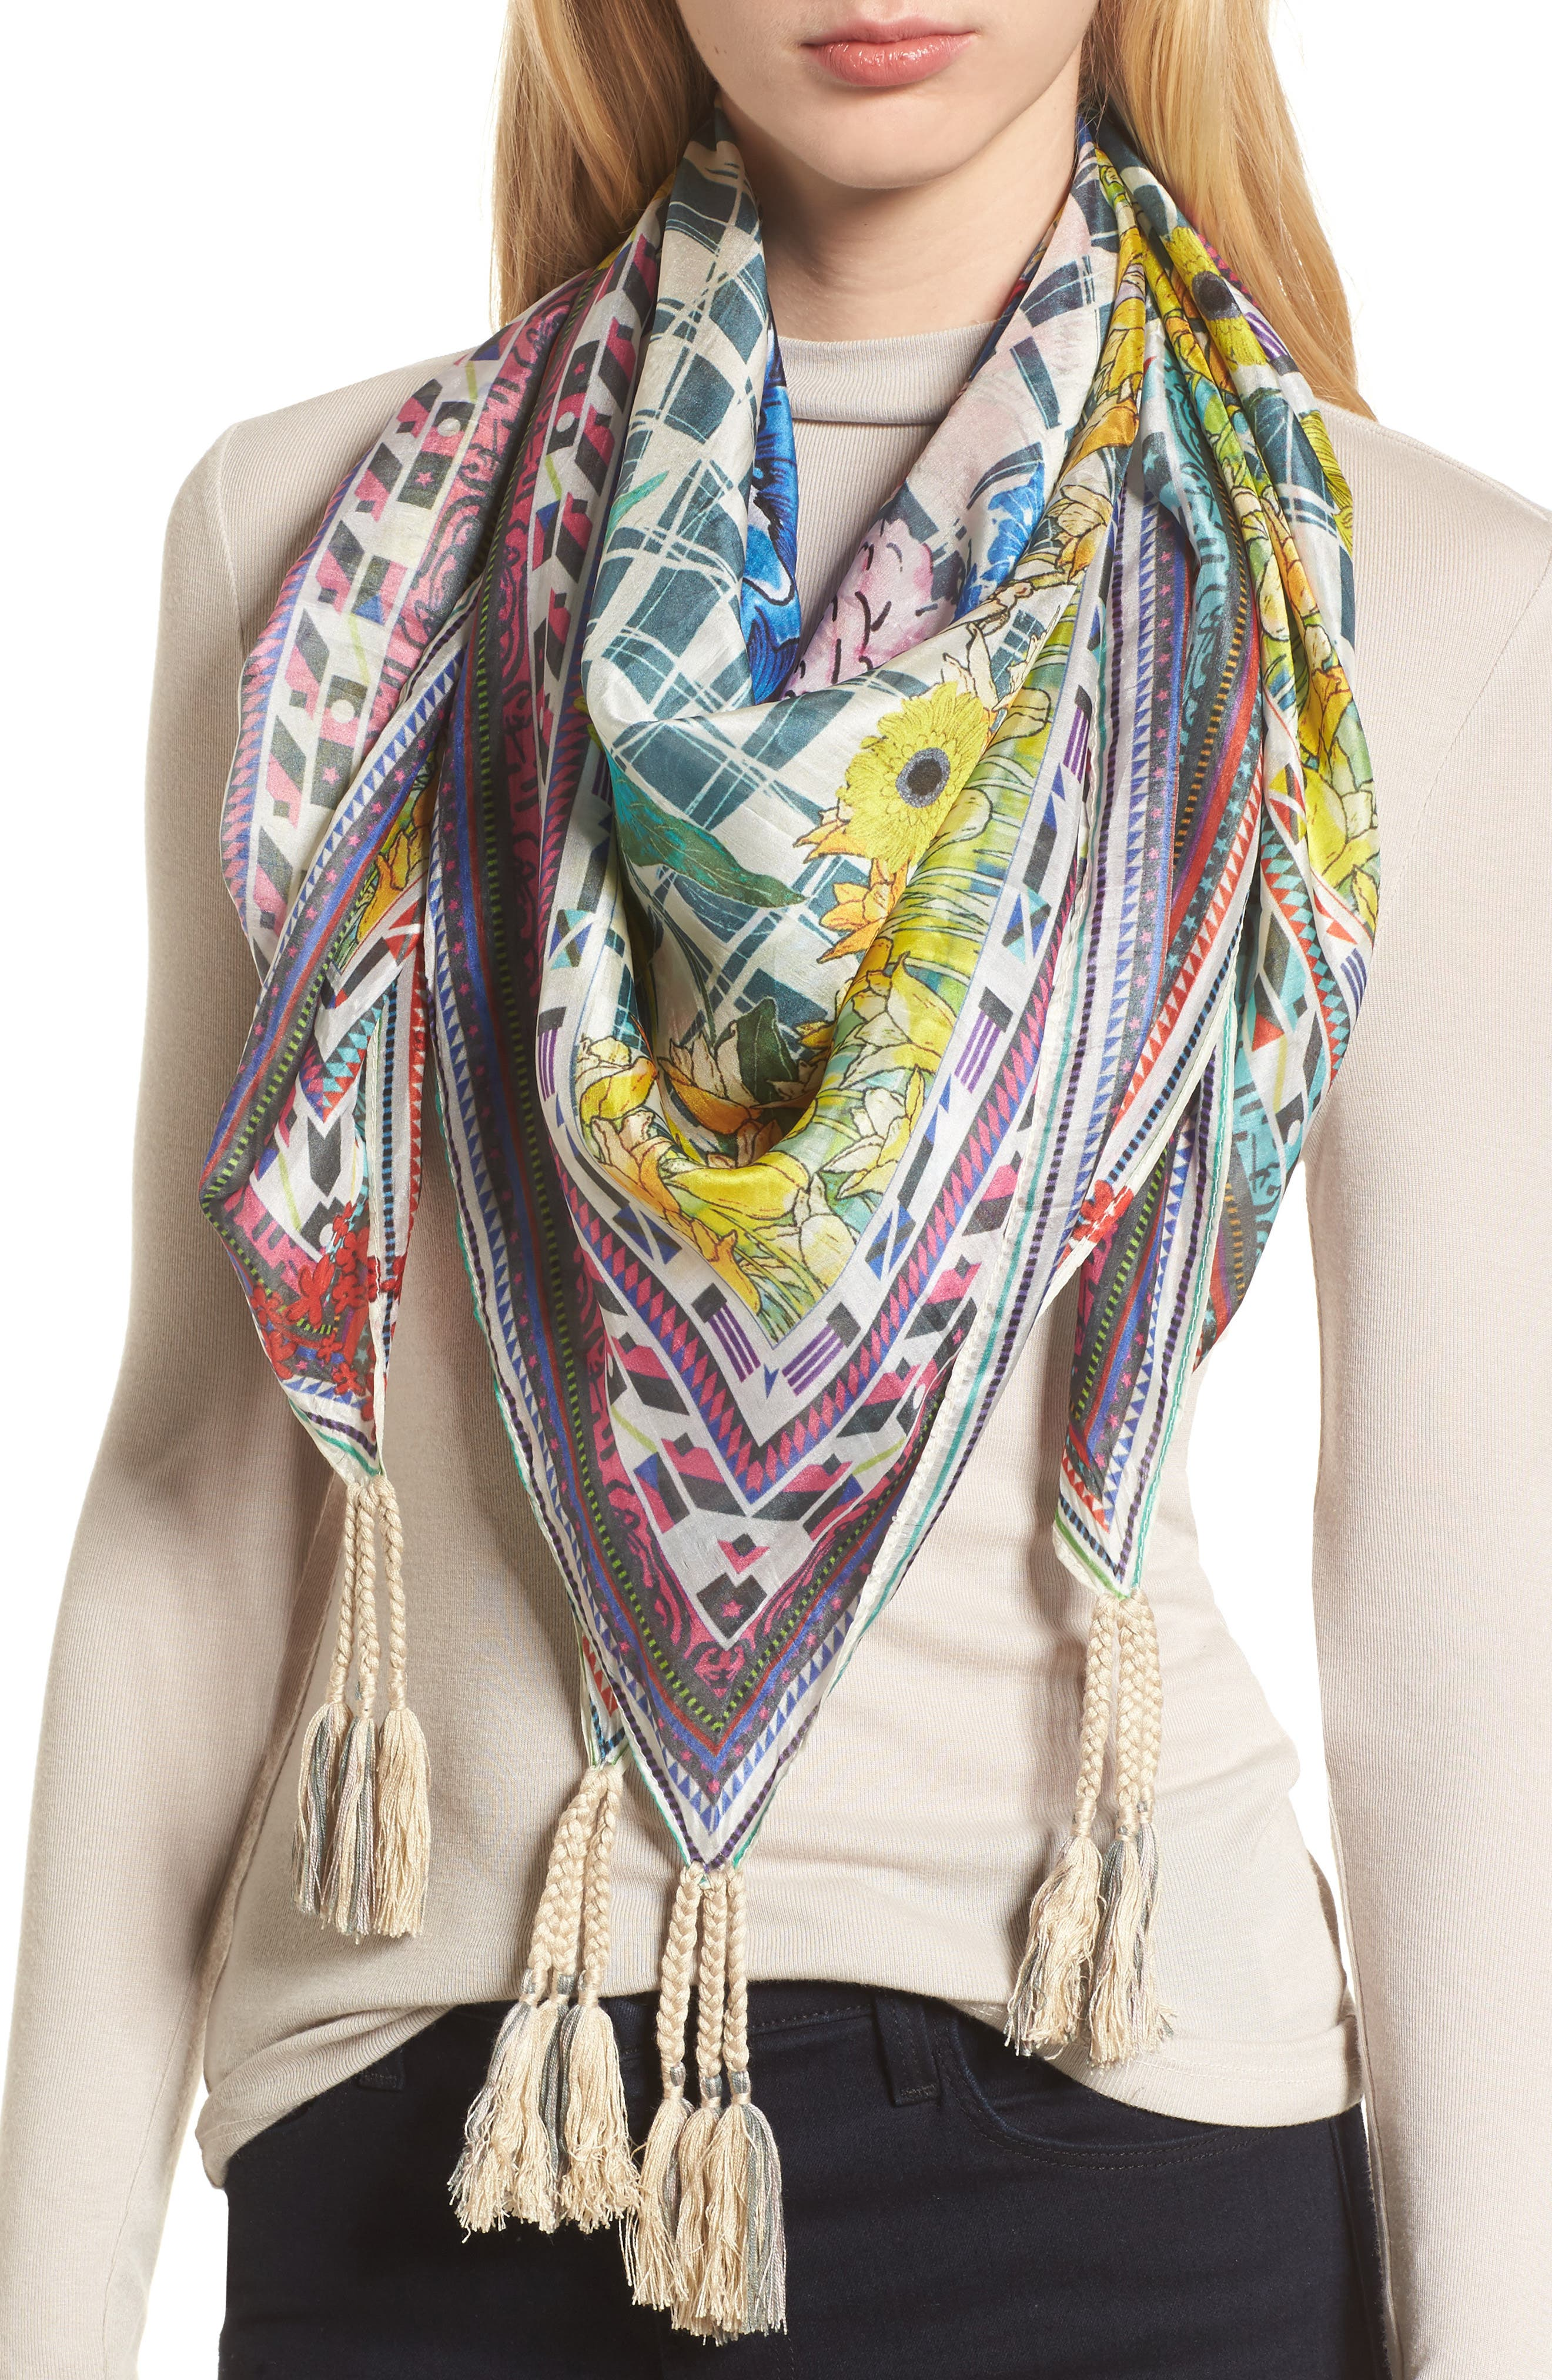 Modal Scarf - Rose Noir by St. James Whitting St James Whitting PfqlDb